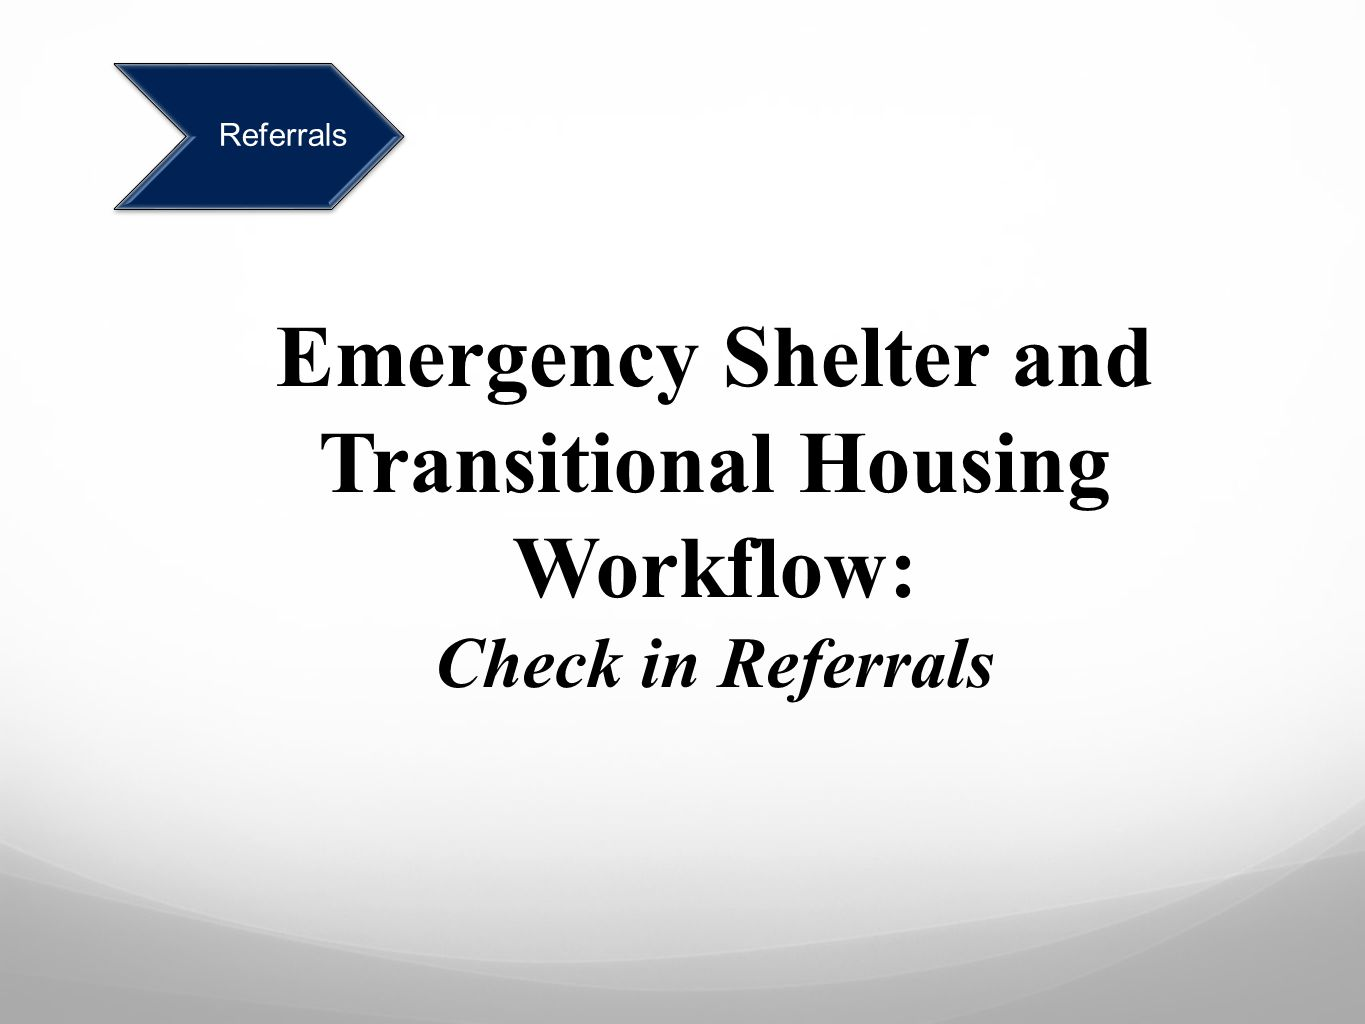 Emergency Shelter and Transitional Housing Workflow: